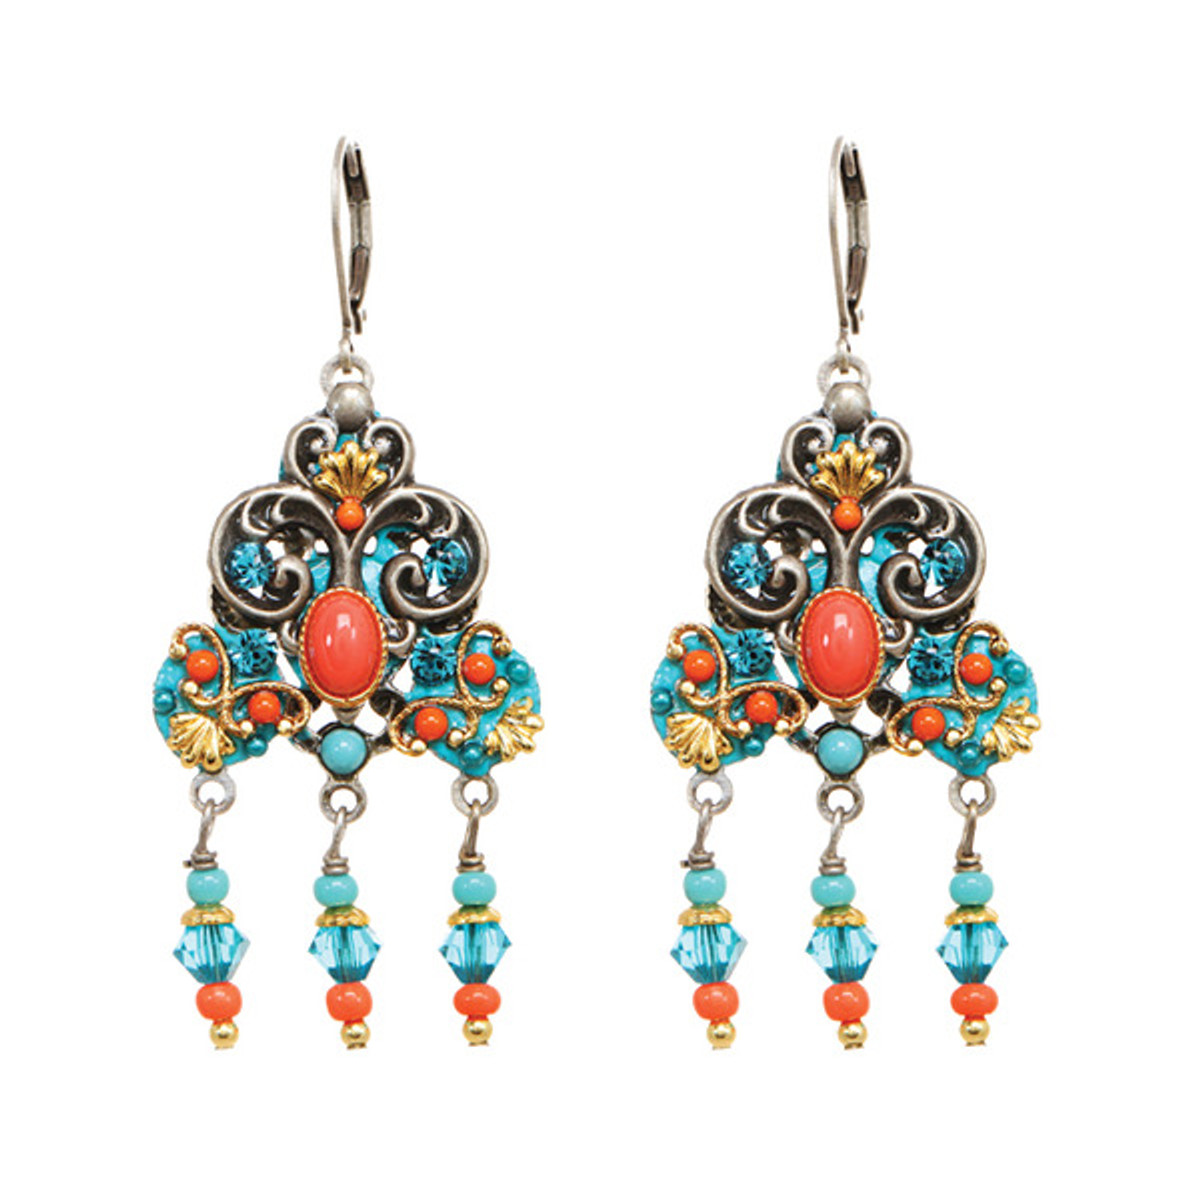 Lovely Coral Sea Earrings From Michal Golan Jewelry